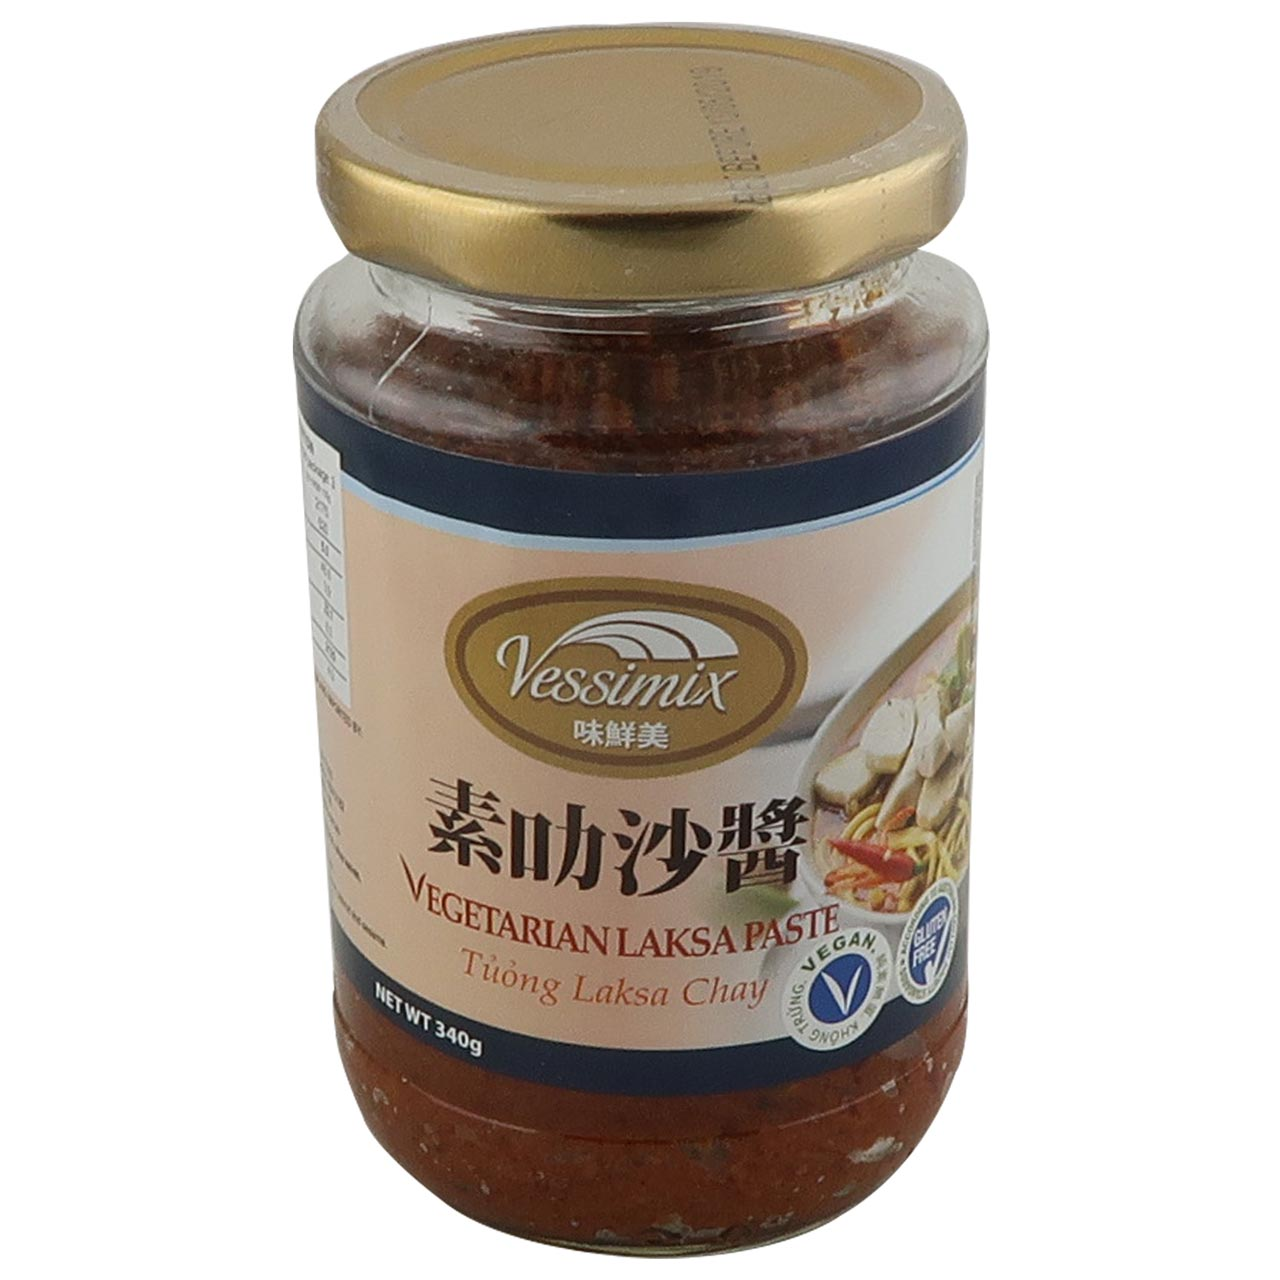 Vessimix Laksa Paste